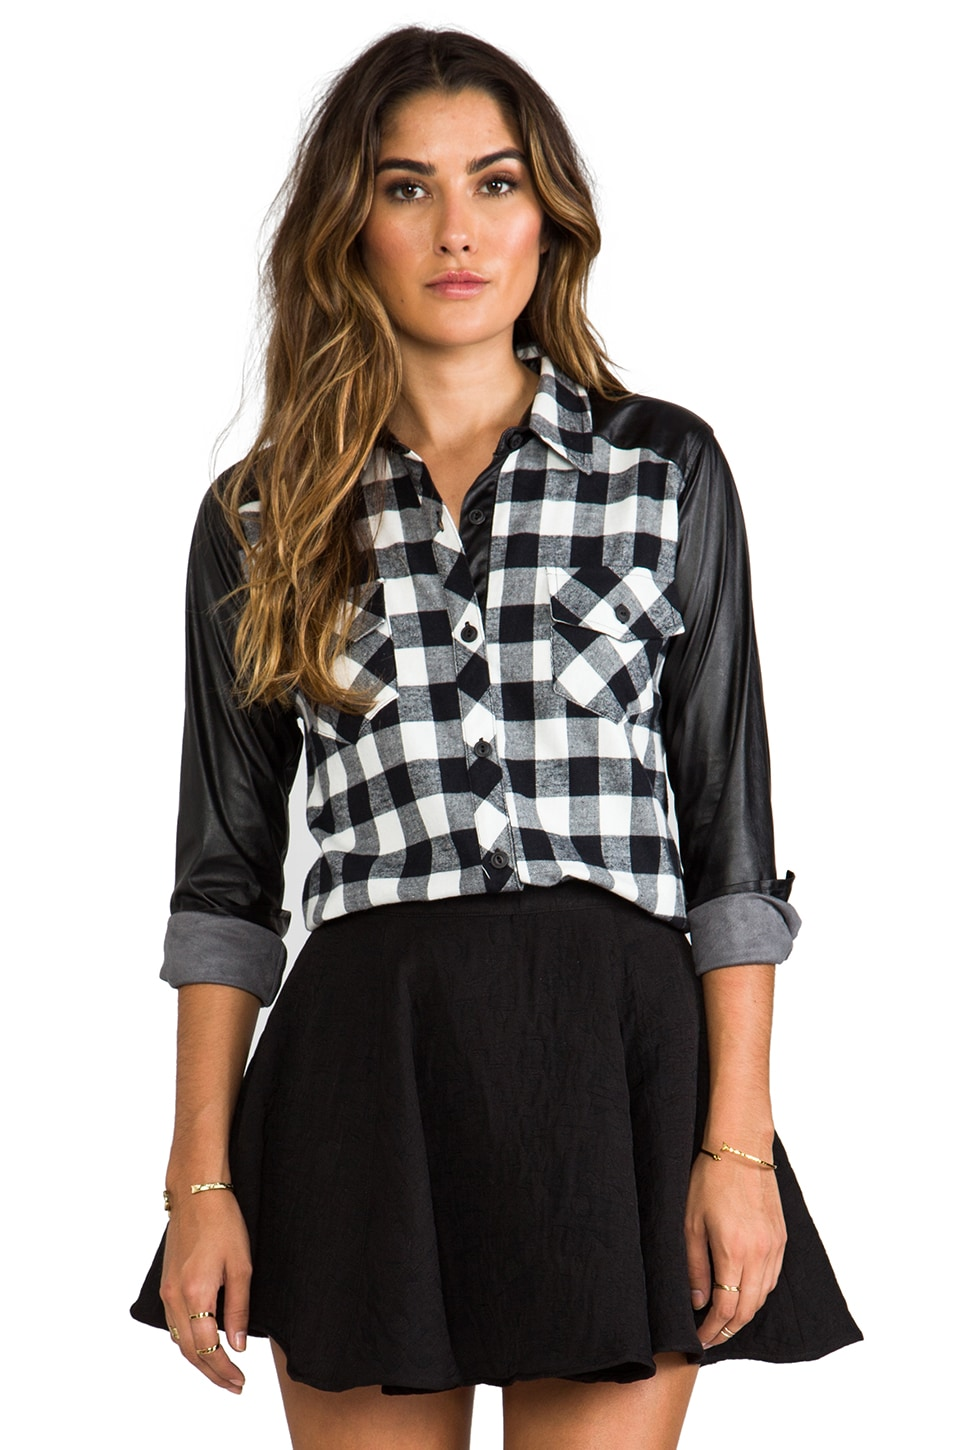 Generation Love Olga Leather Sleeve Plaid Top in Black/White